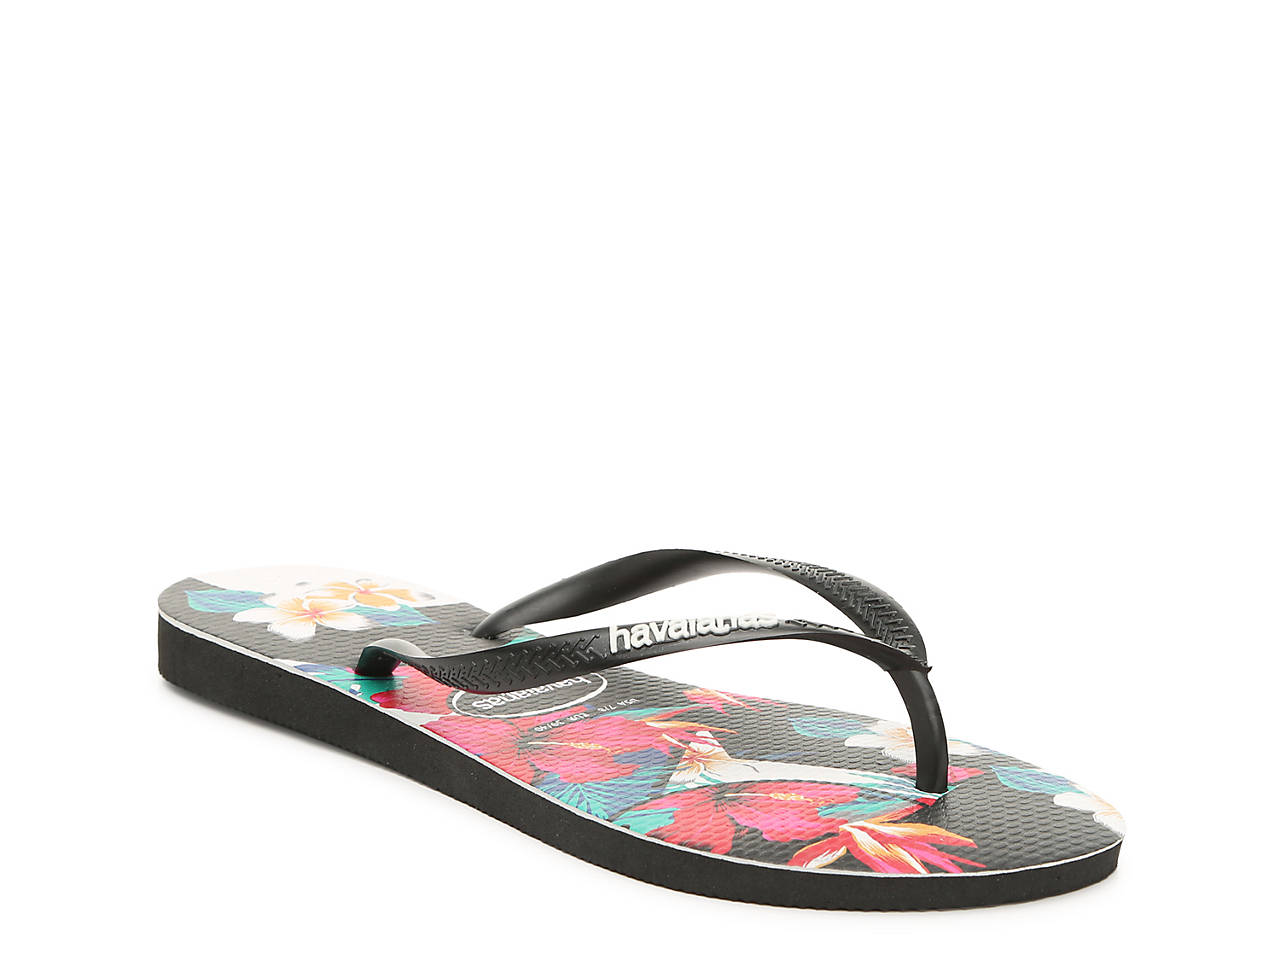 827a4173a790 Havaianas Slim Tropical Flip Flop Women s Shoes